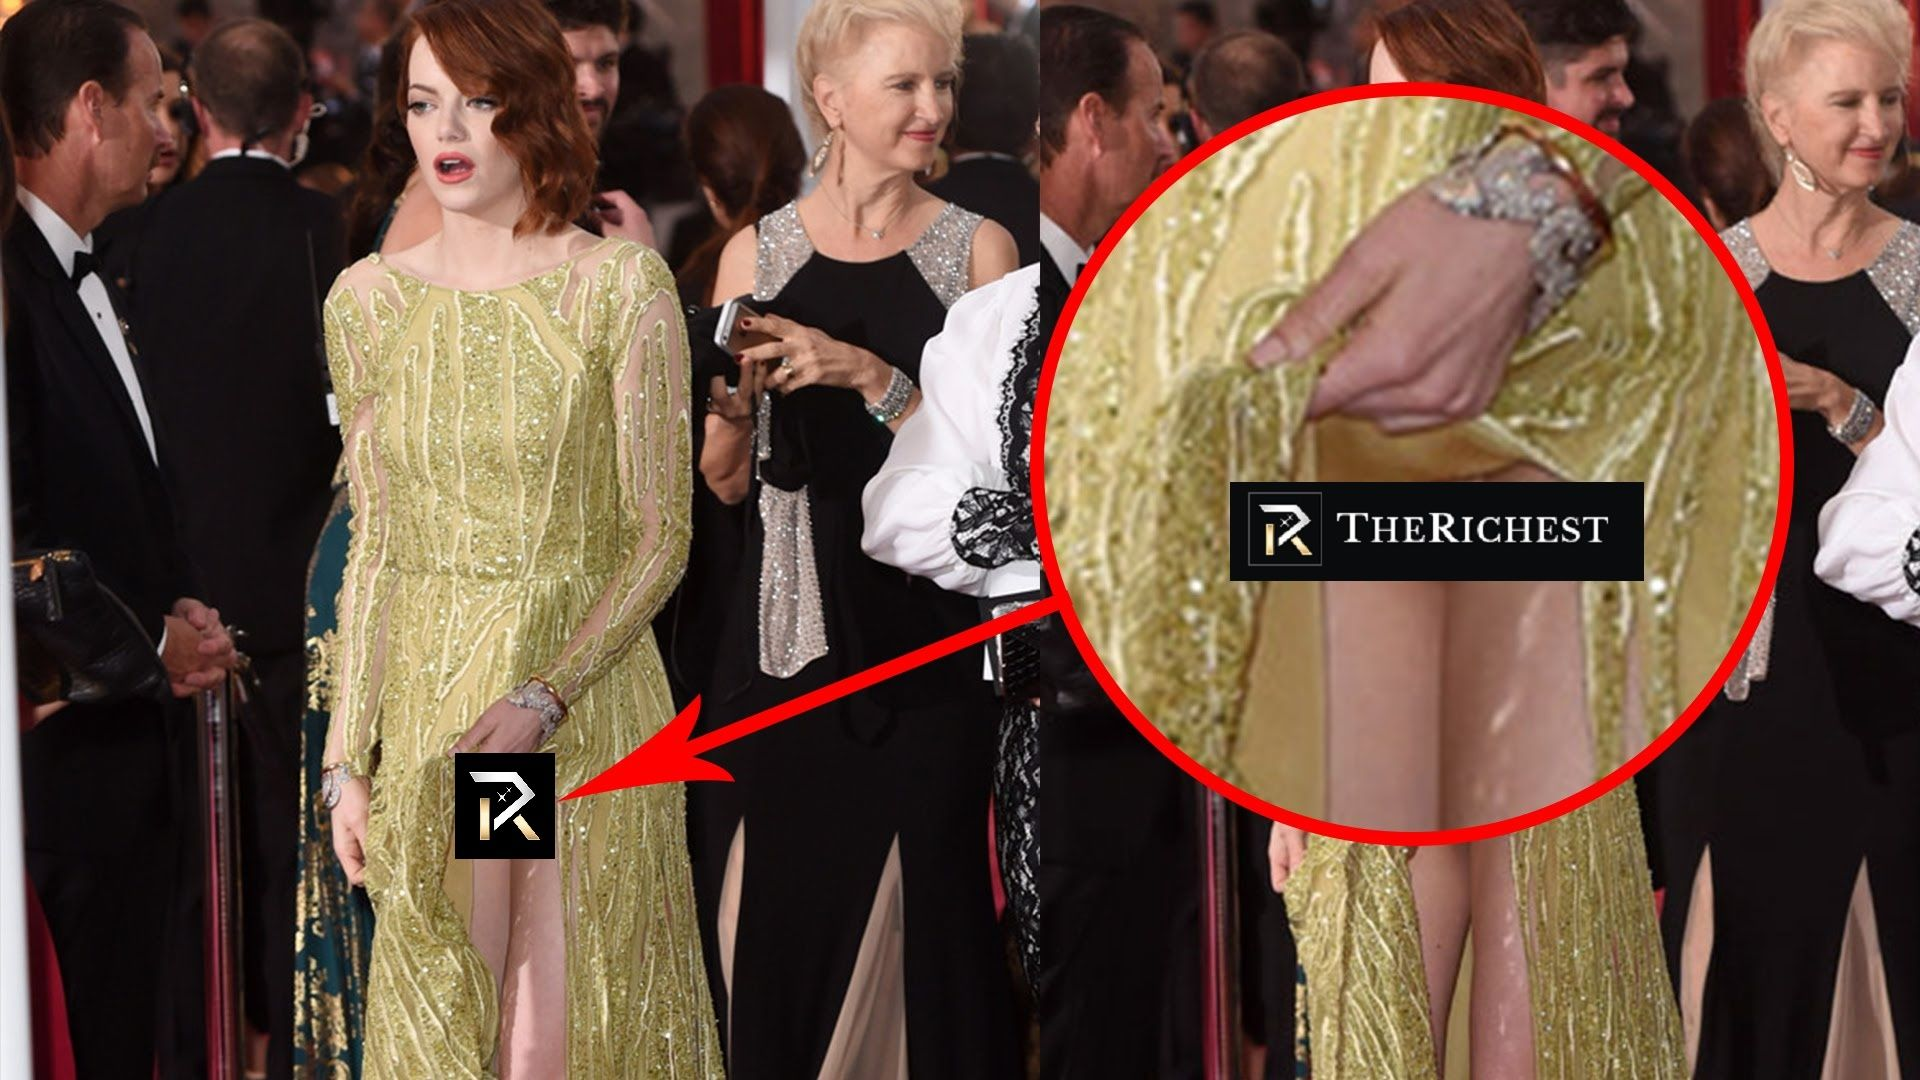 The 13 Worst Celebrity Wardrobe Malfunctions At Public Events